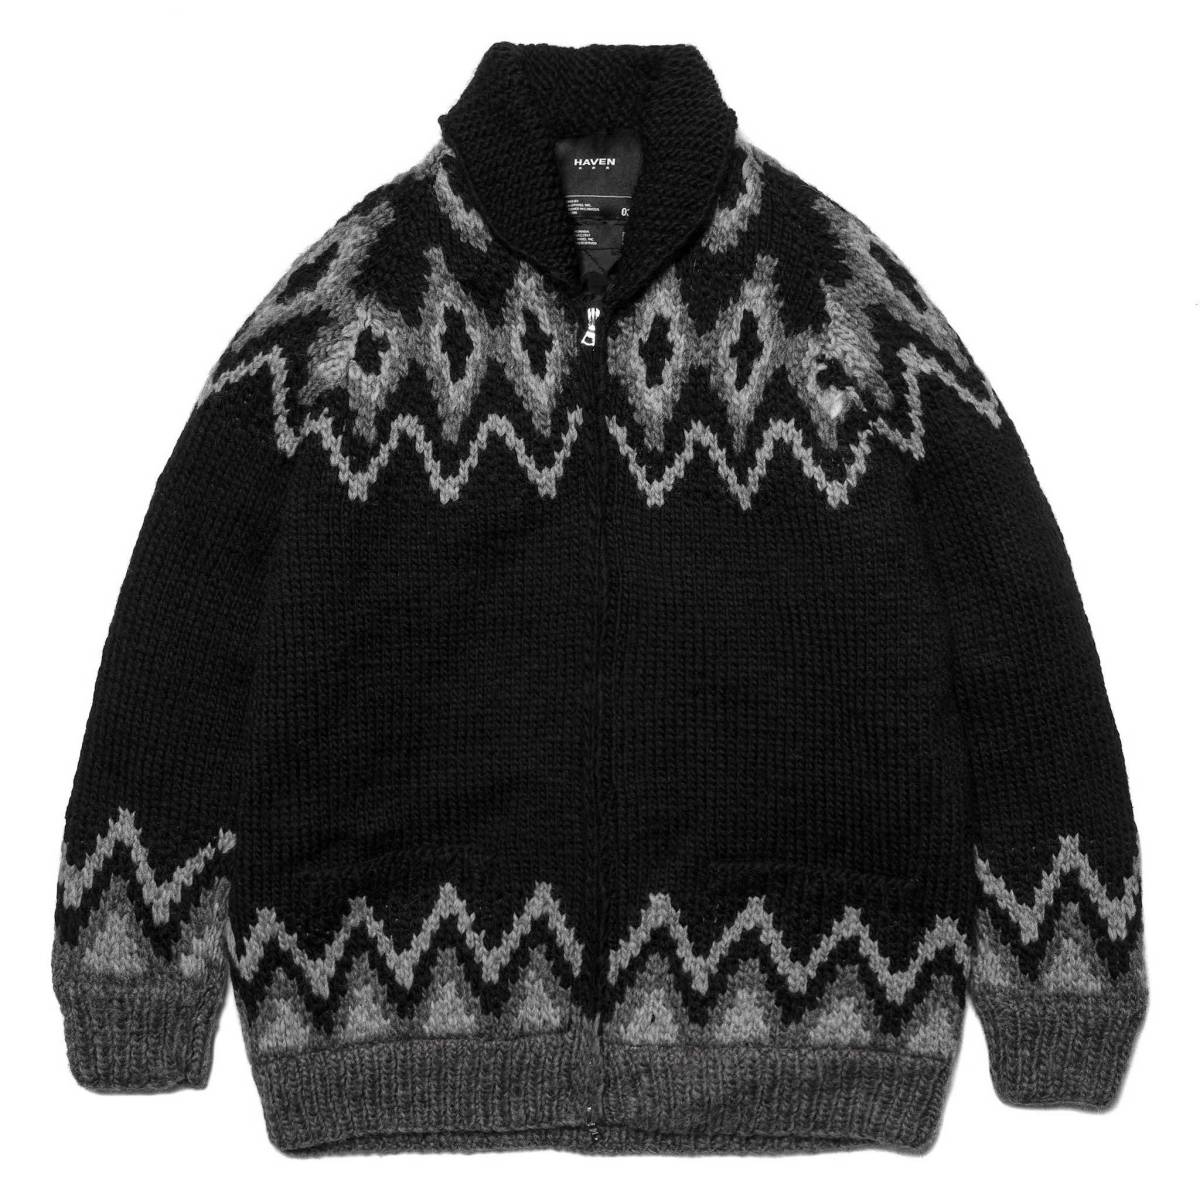 Haven Cowichan Sweater